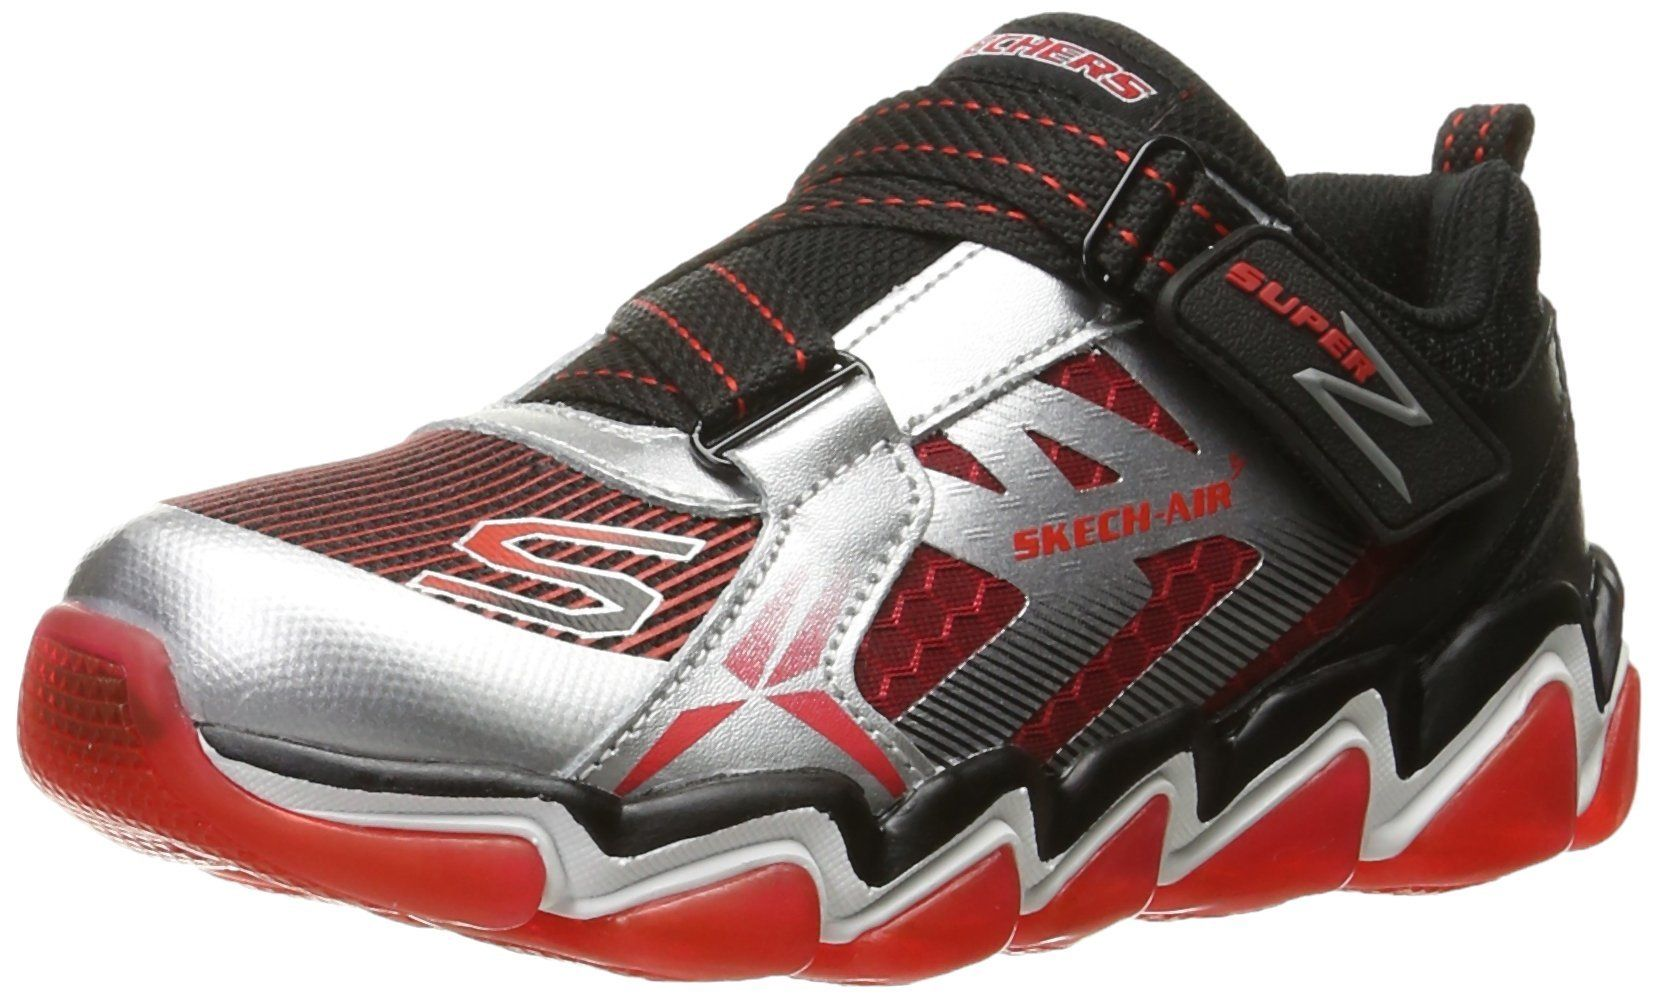 eab46315c8a Buy skechers roller shoes > OFF49% Discounted